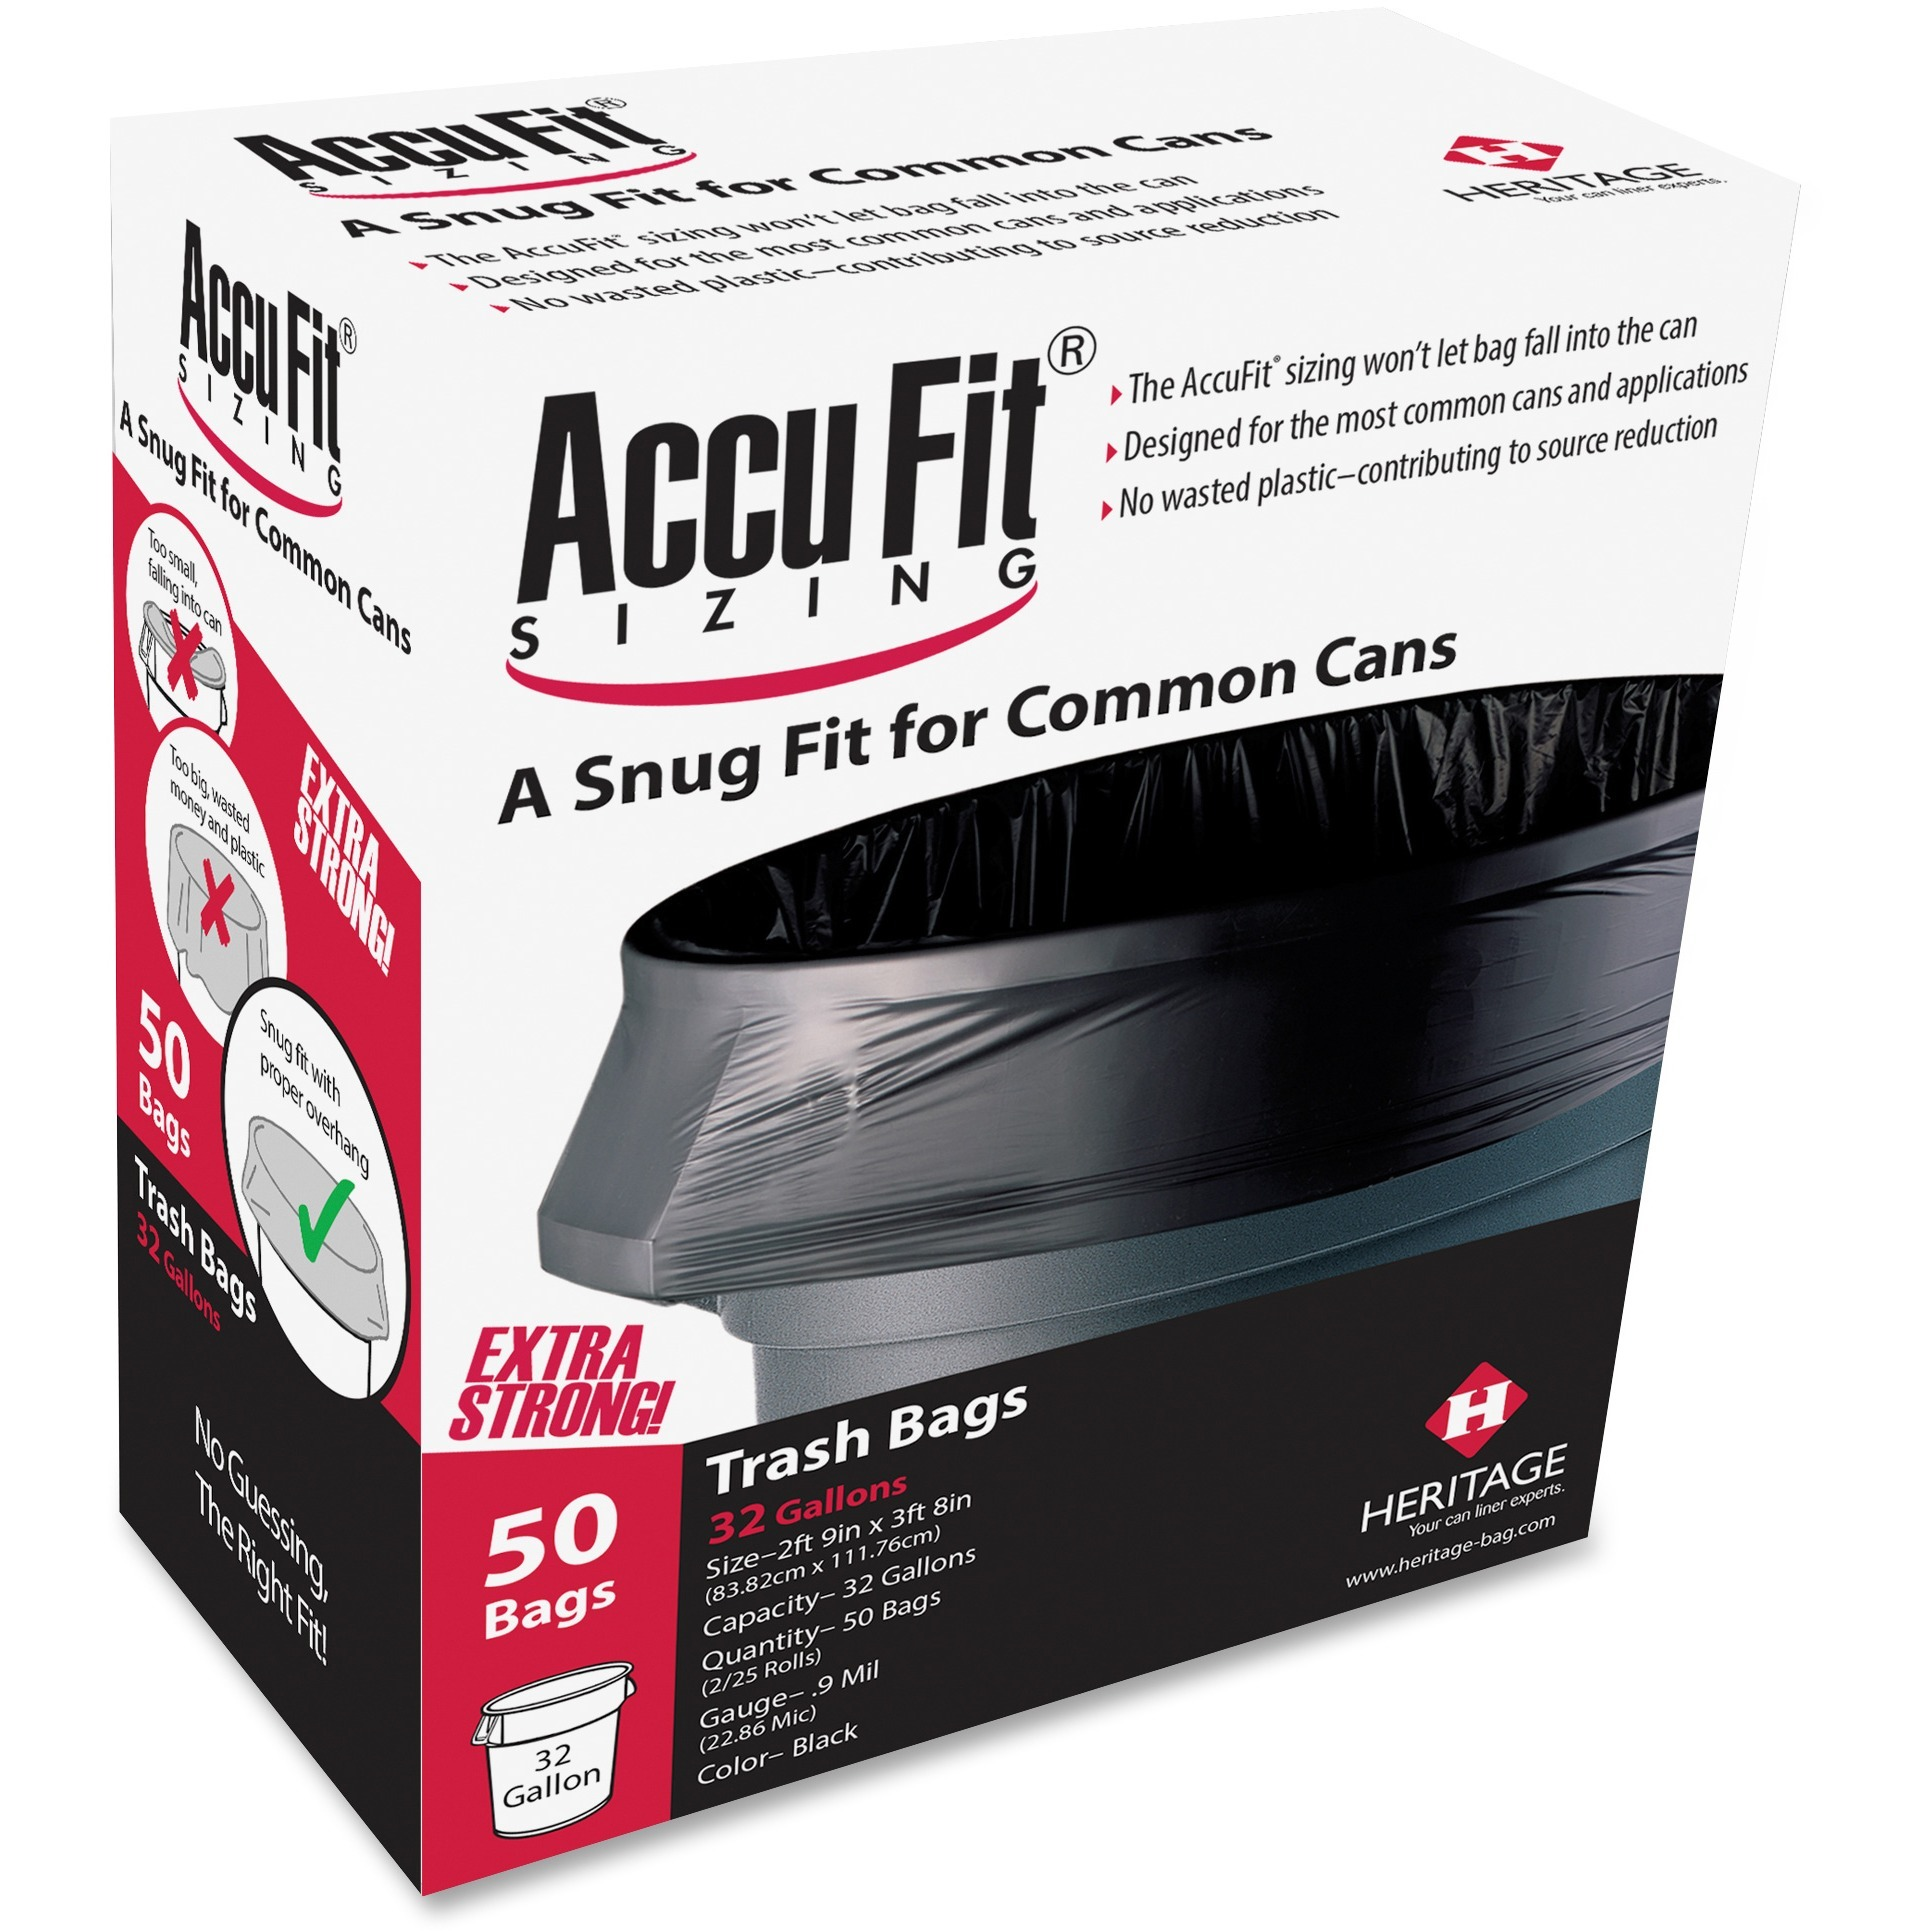 Heritage, HERH6644TKRC1, Accufit Reprime 32 Gallon Can Liners, 50 / Box, Black, 32 gal